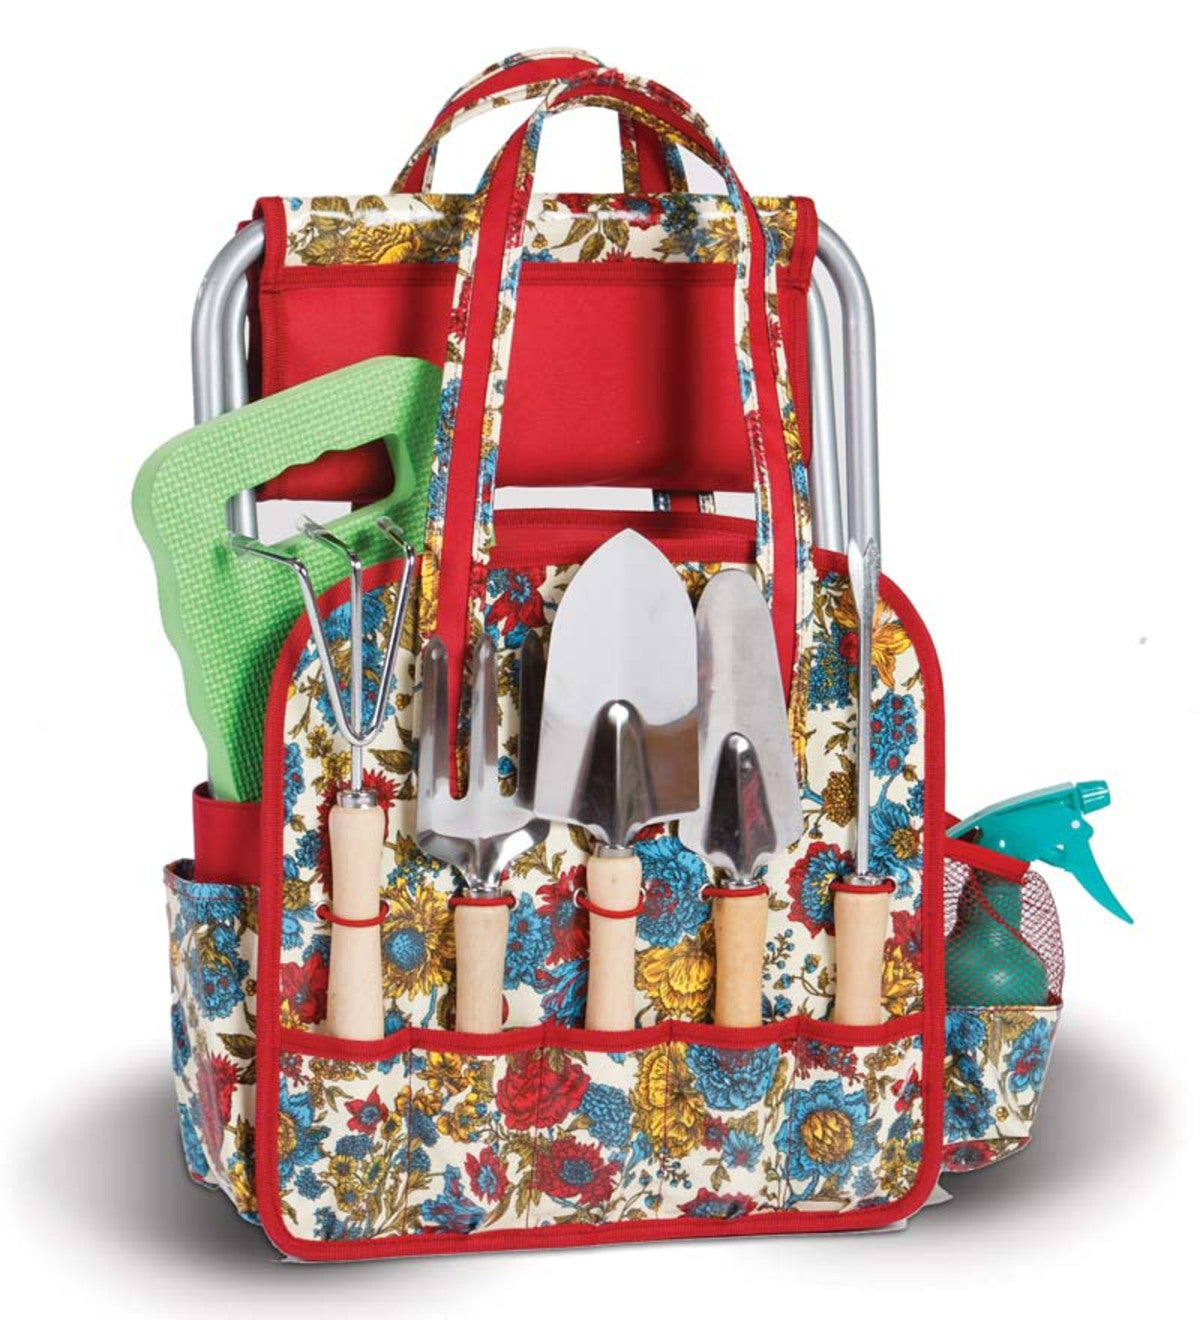 Floral Garden Tote and Tools Set